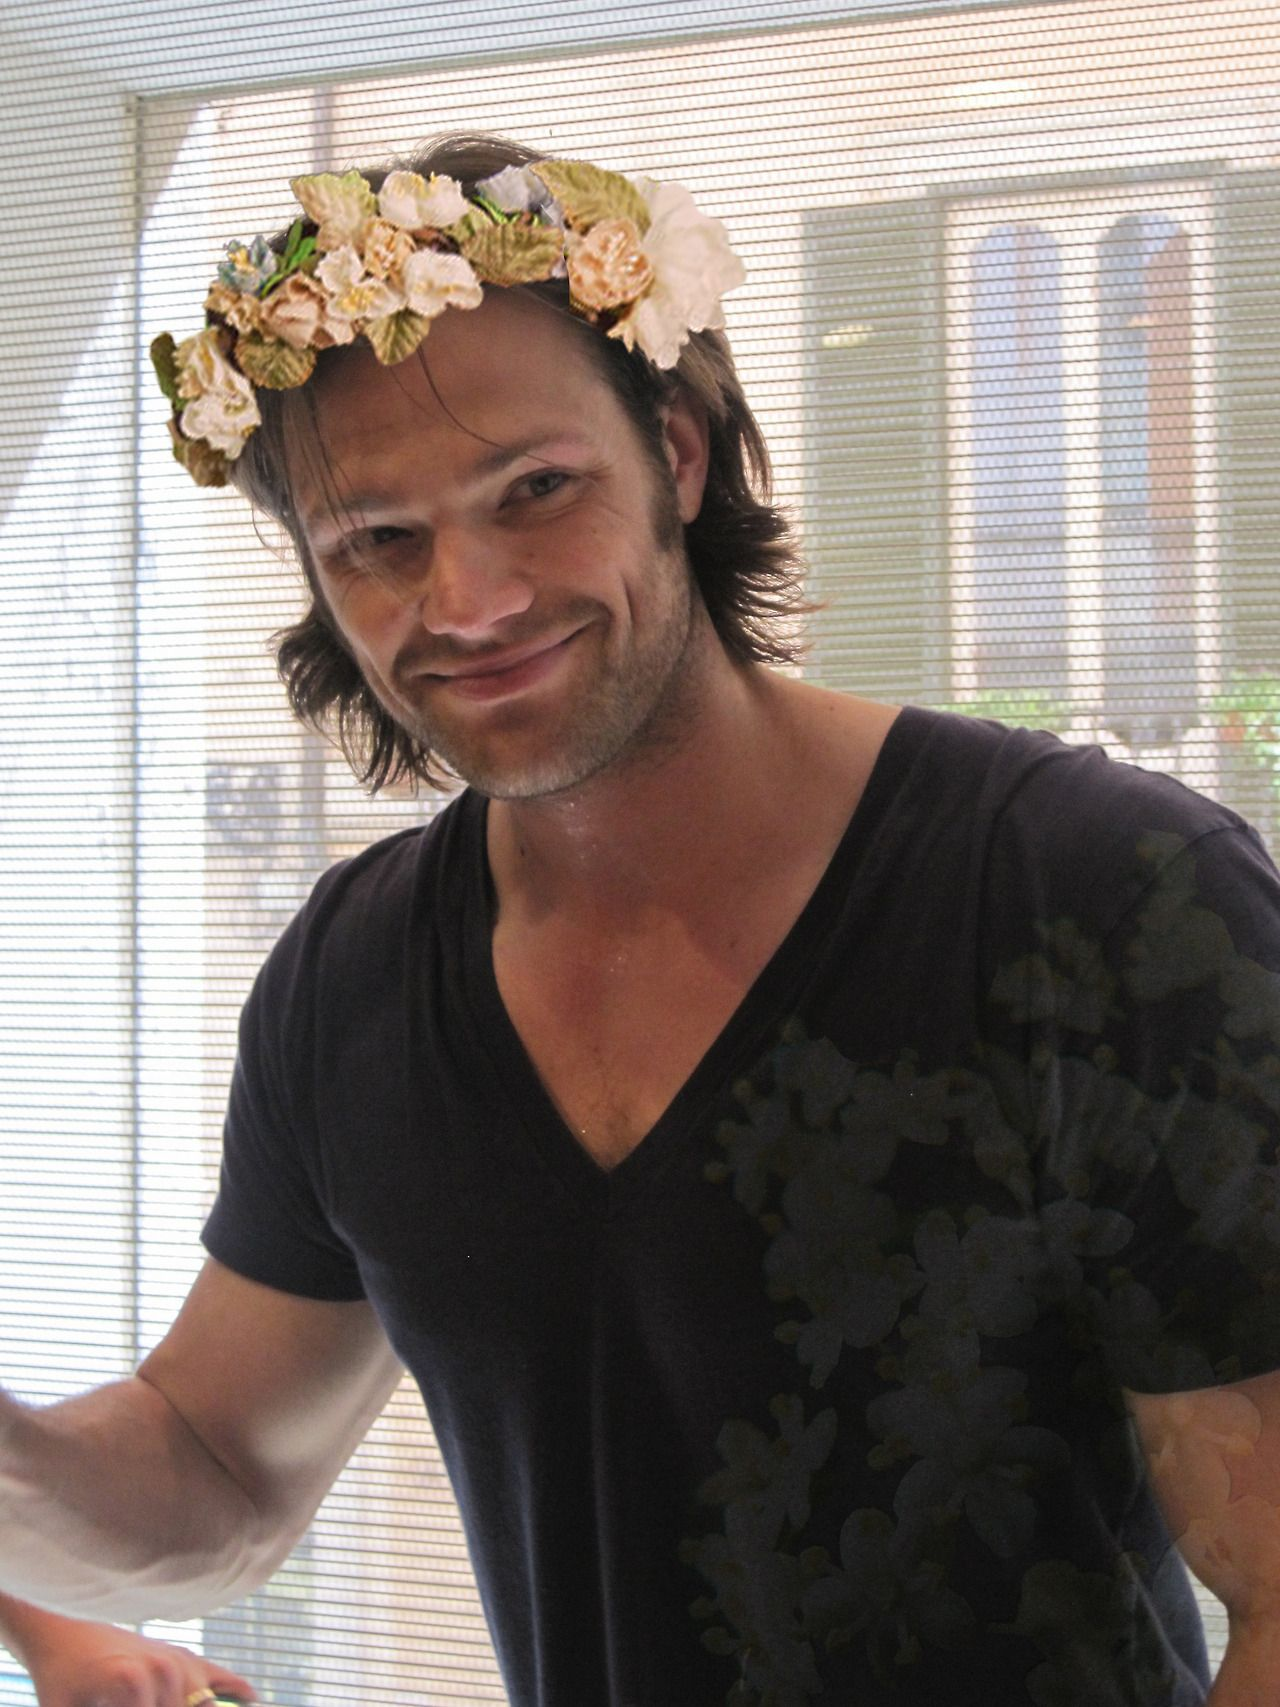 Jared Padalecki Flower Crown Only This Man Could Pull It Off